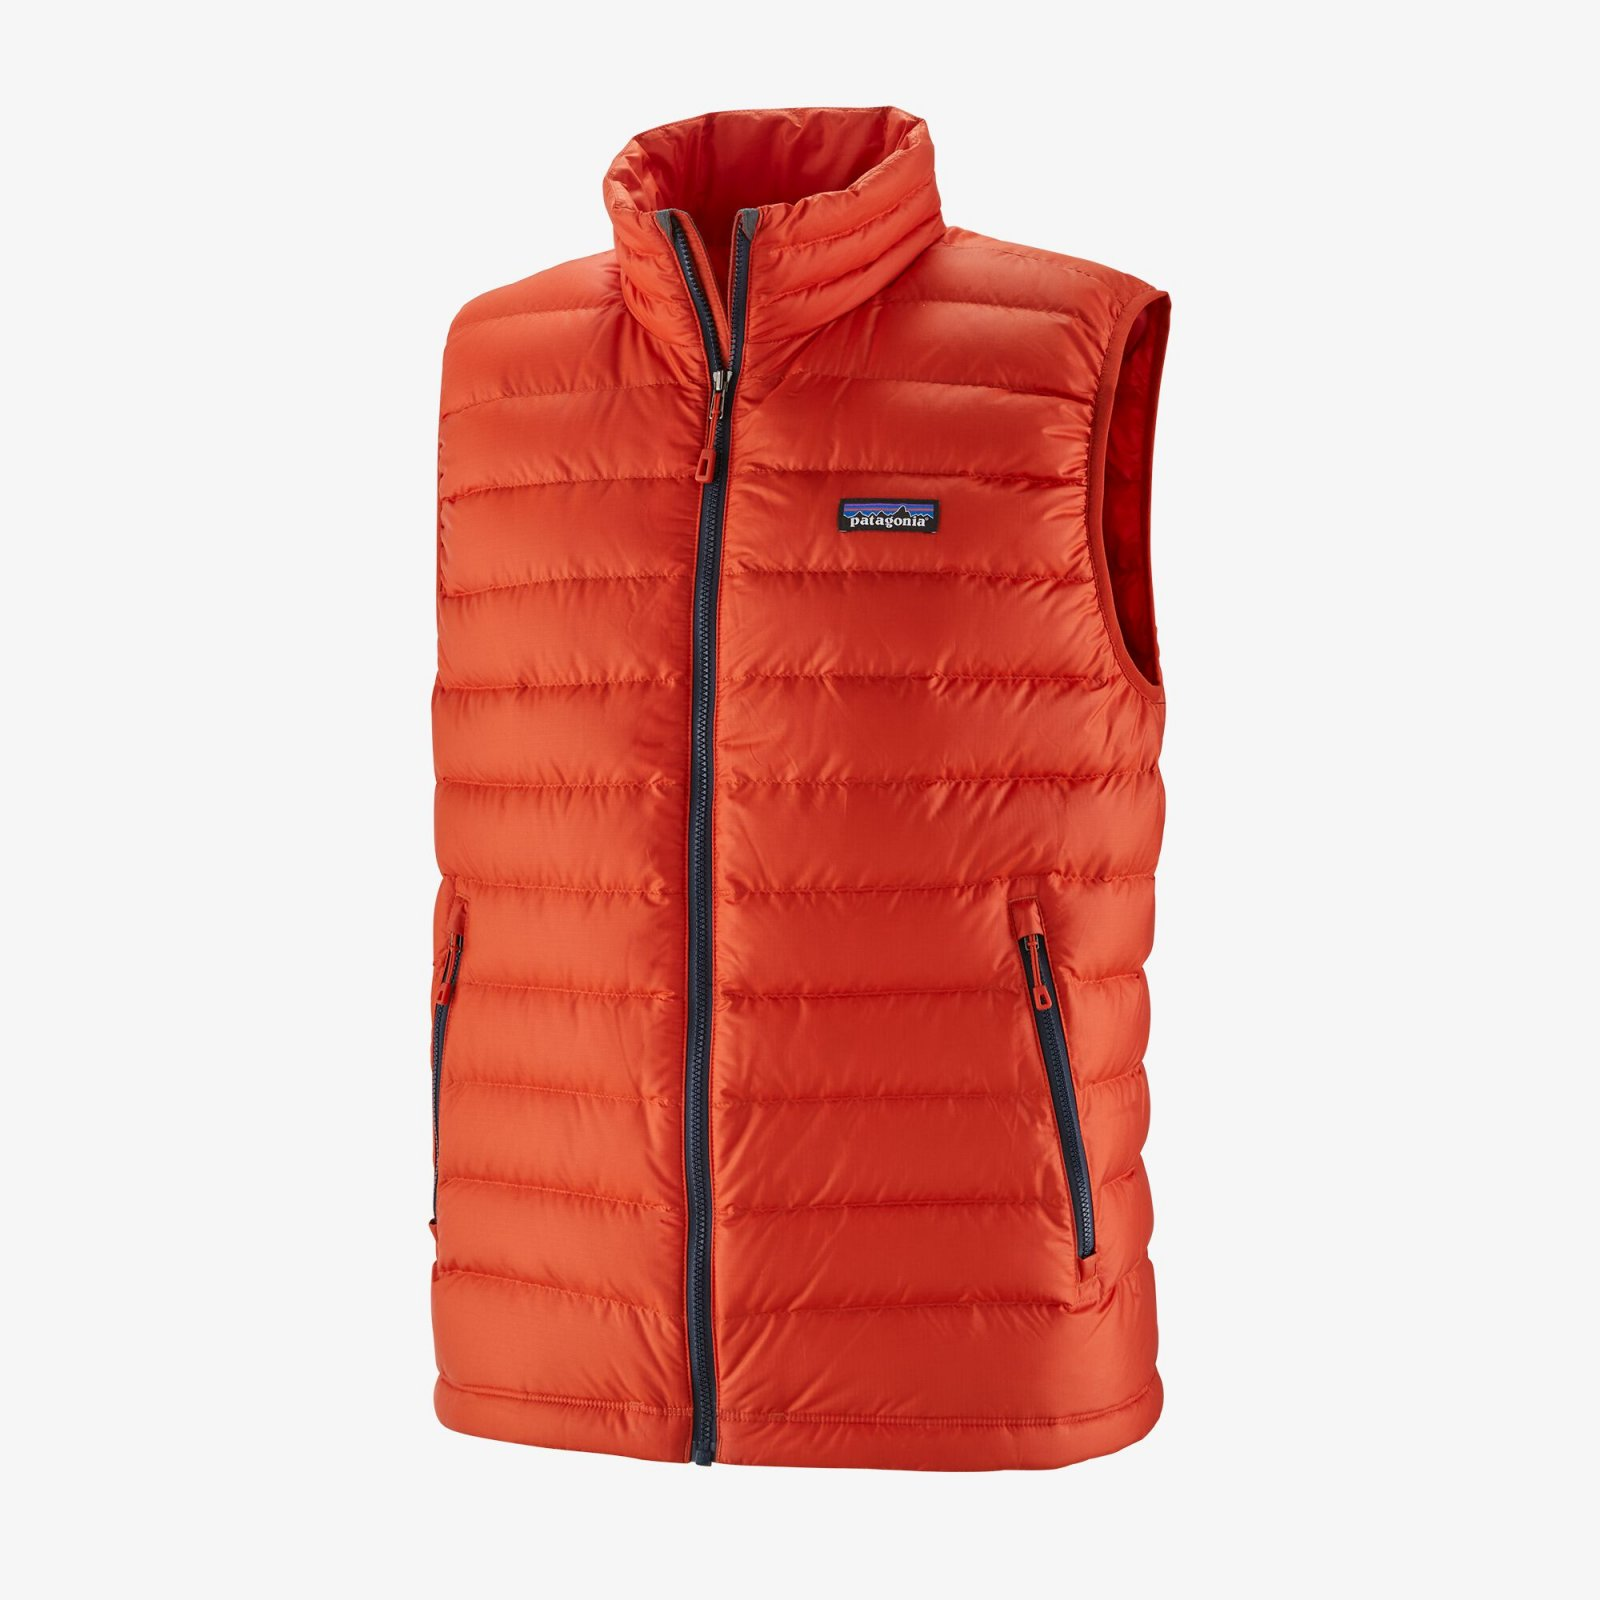 M's Patagonia Down Sweater Vest in Hot Ember